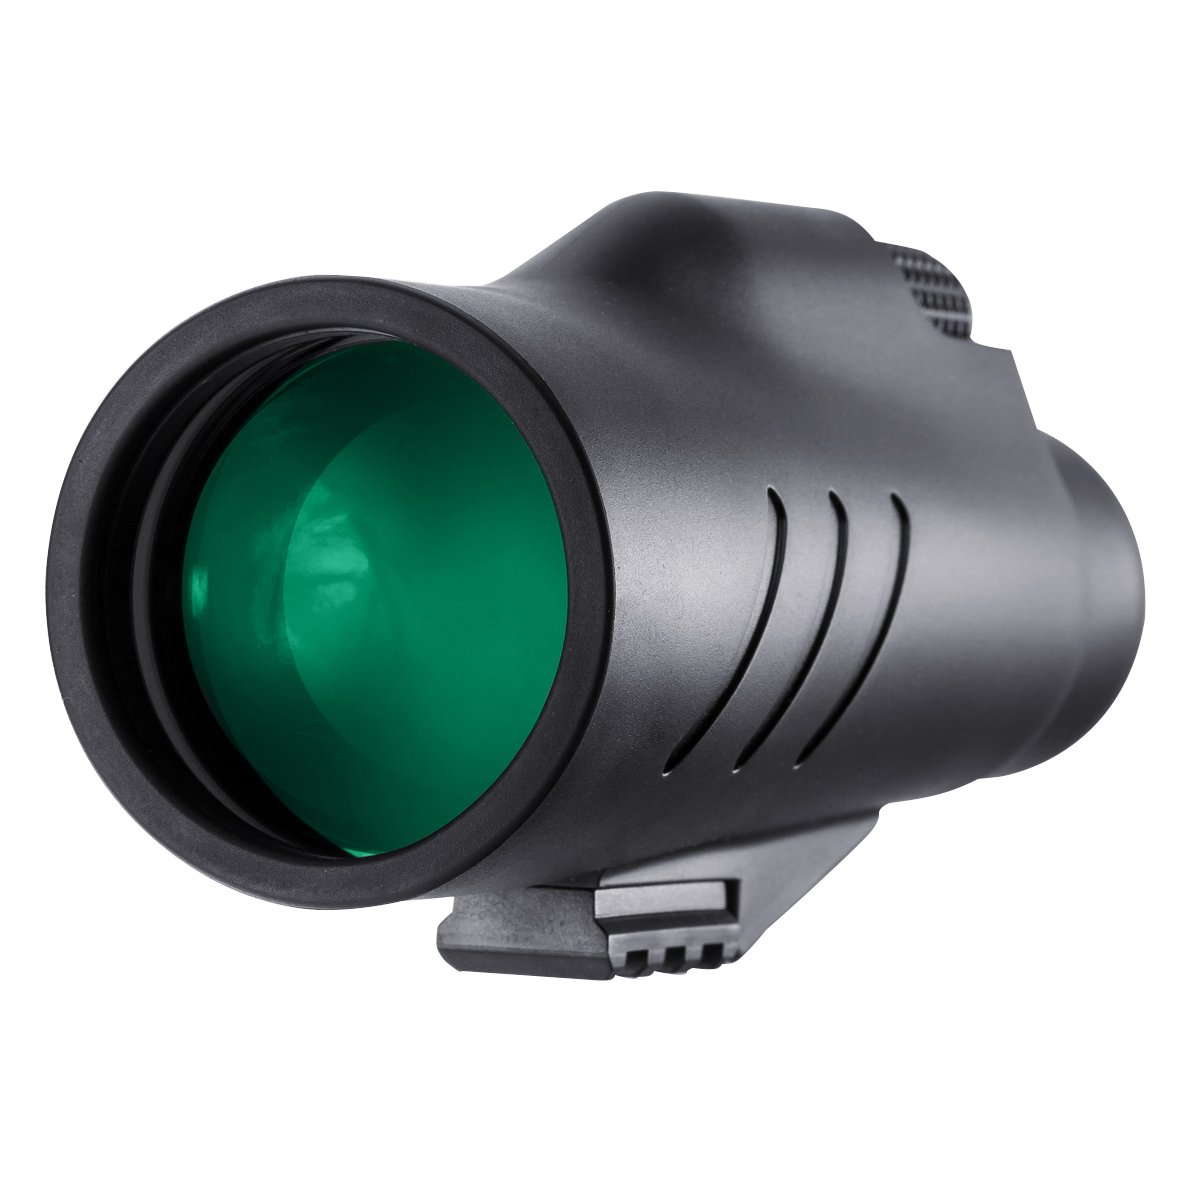 QUNSE 10X50 High Power Monocular Scope, with Hand strap for Adults and Kids, Bright and Clear Range of View, Completely Waterproof, Fogproof, for Bird Watching, Hunting and Outdoor Games